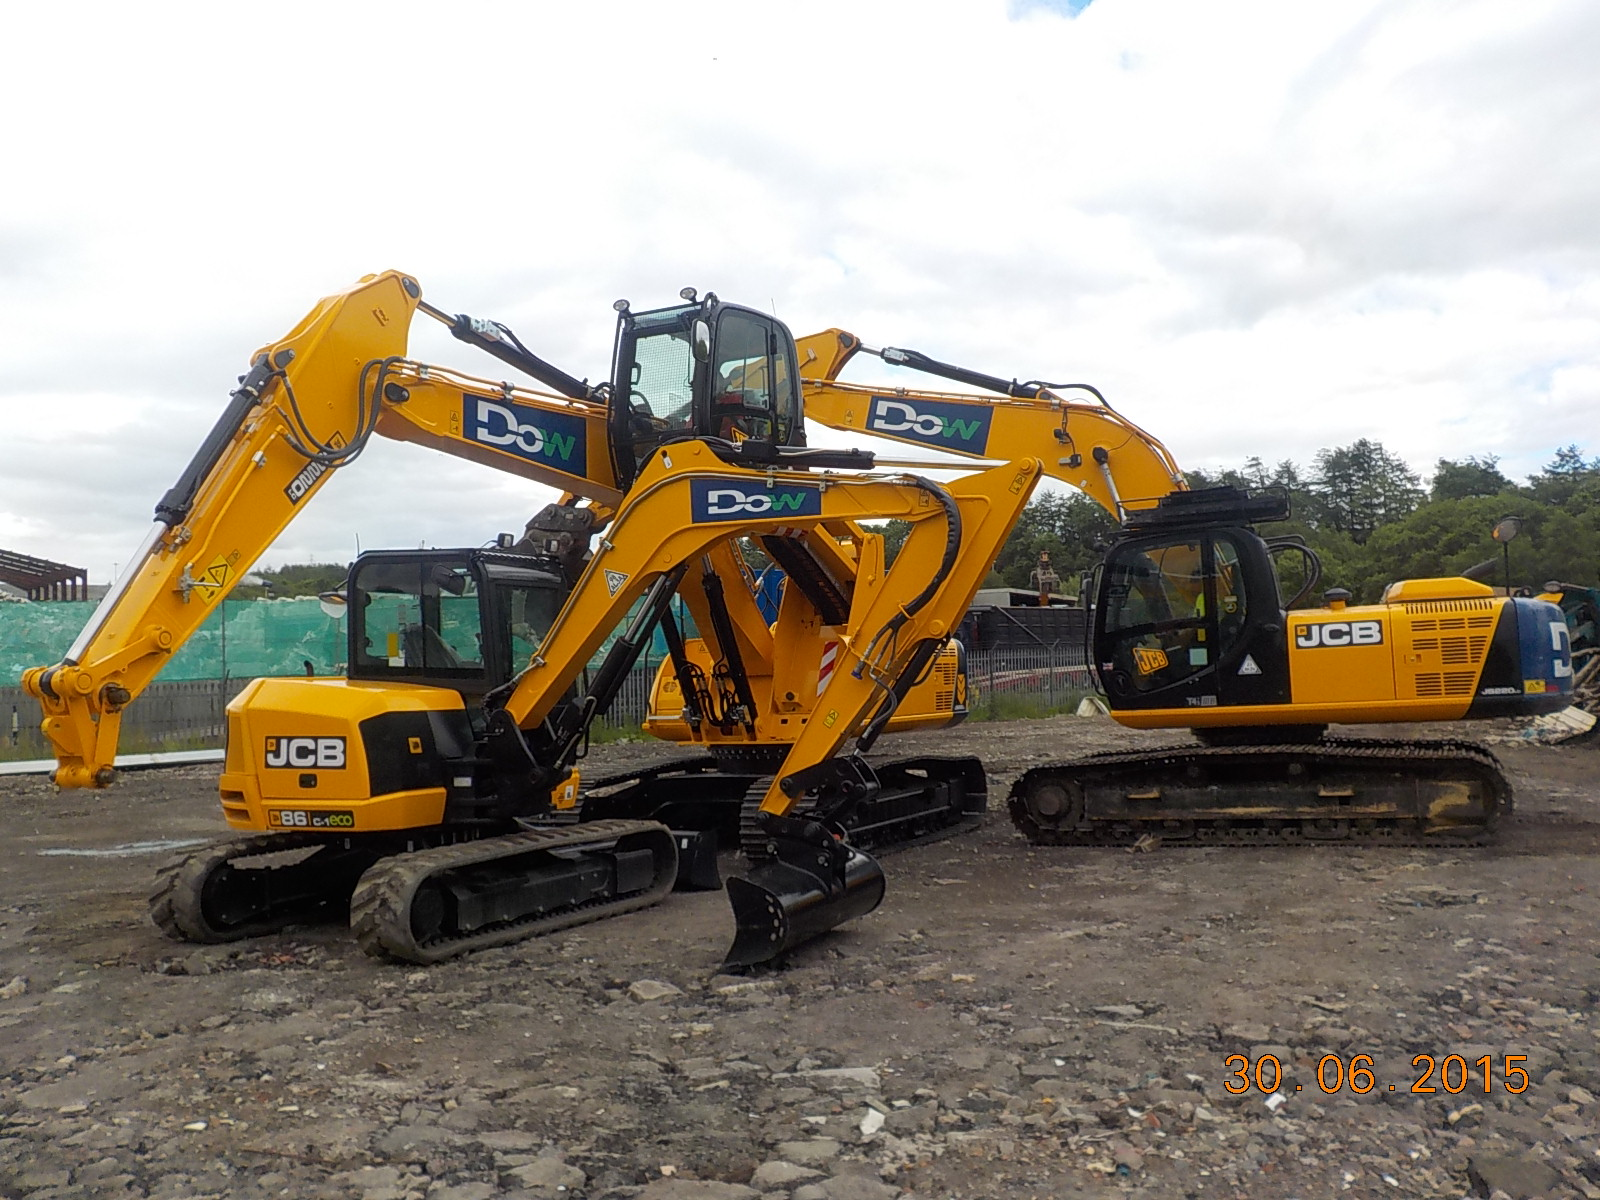 JCB diggers owned by Dow Civil Engineering